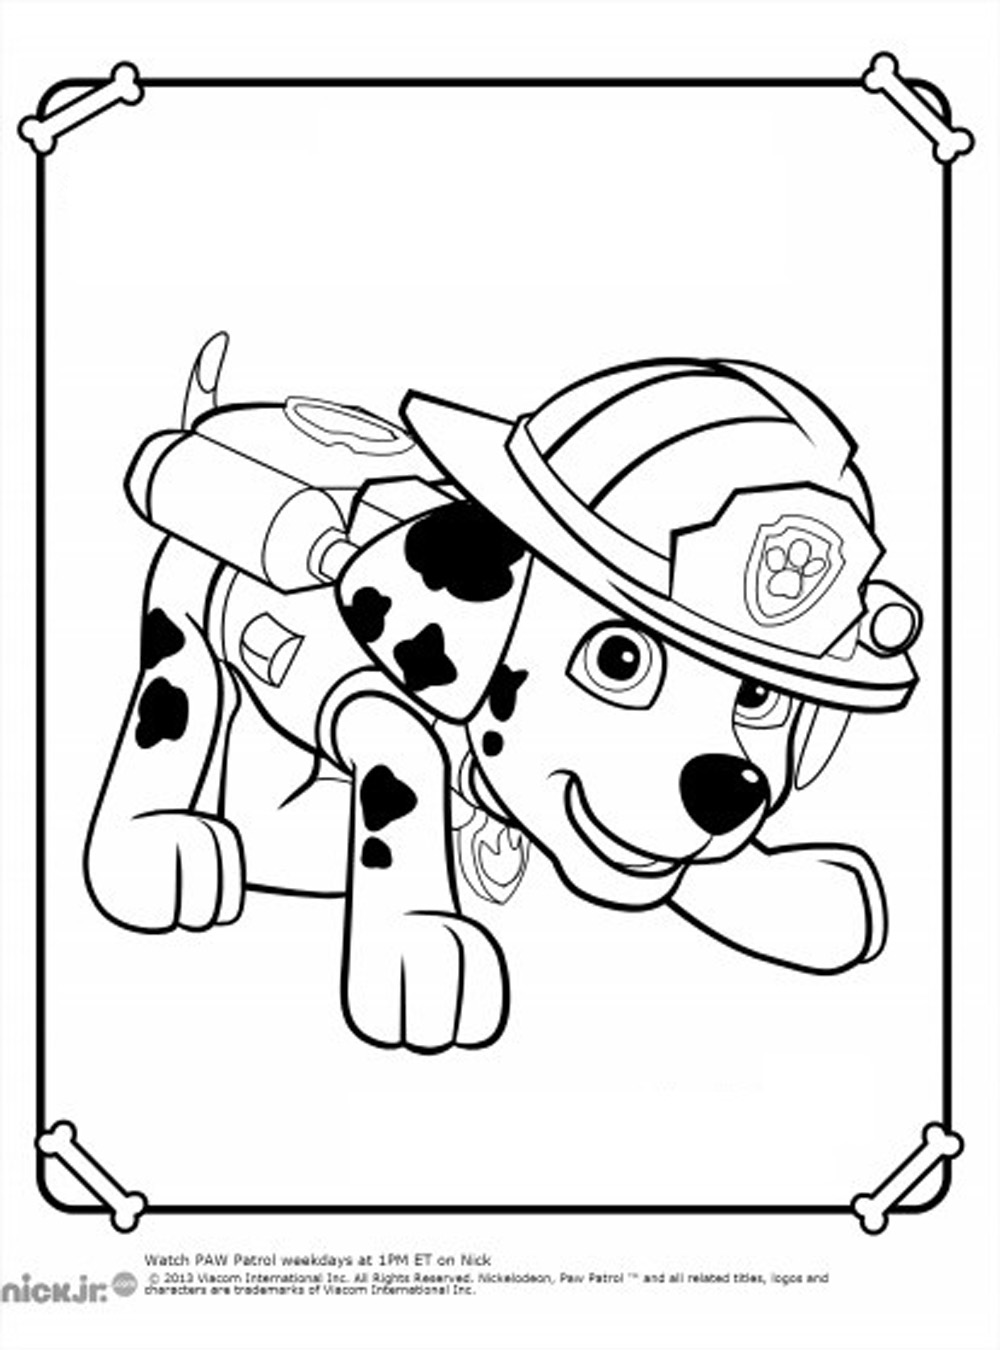 paw patrol coloring characters paw patrol coloring pages printable 30 print color craft paw coloring characters patrol